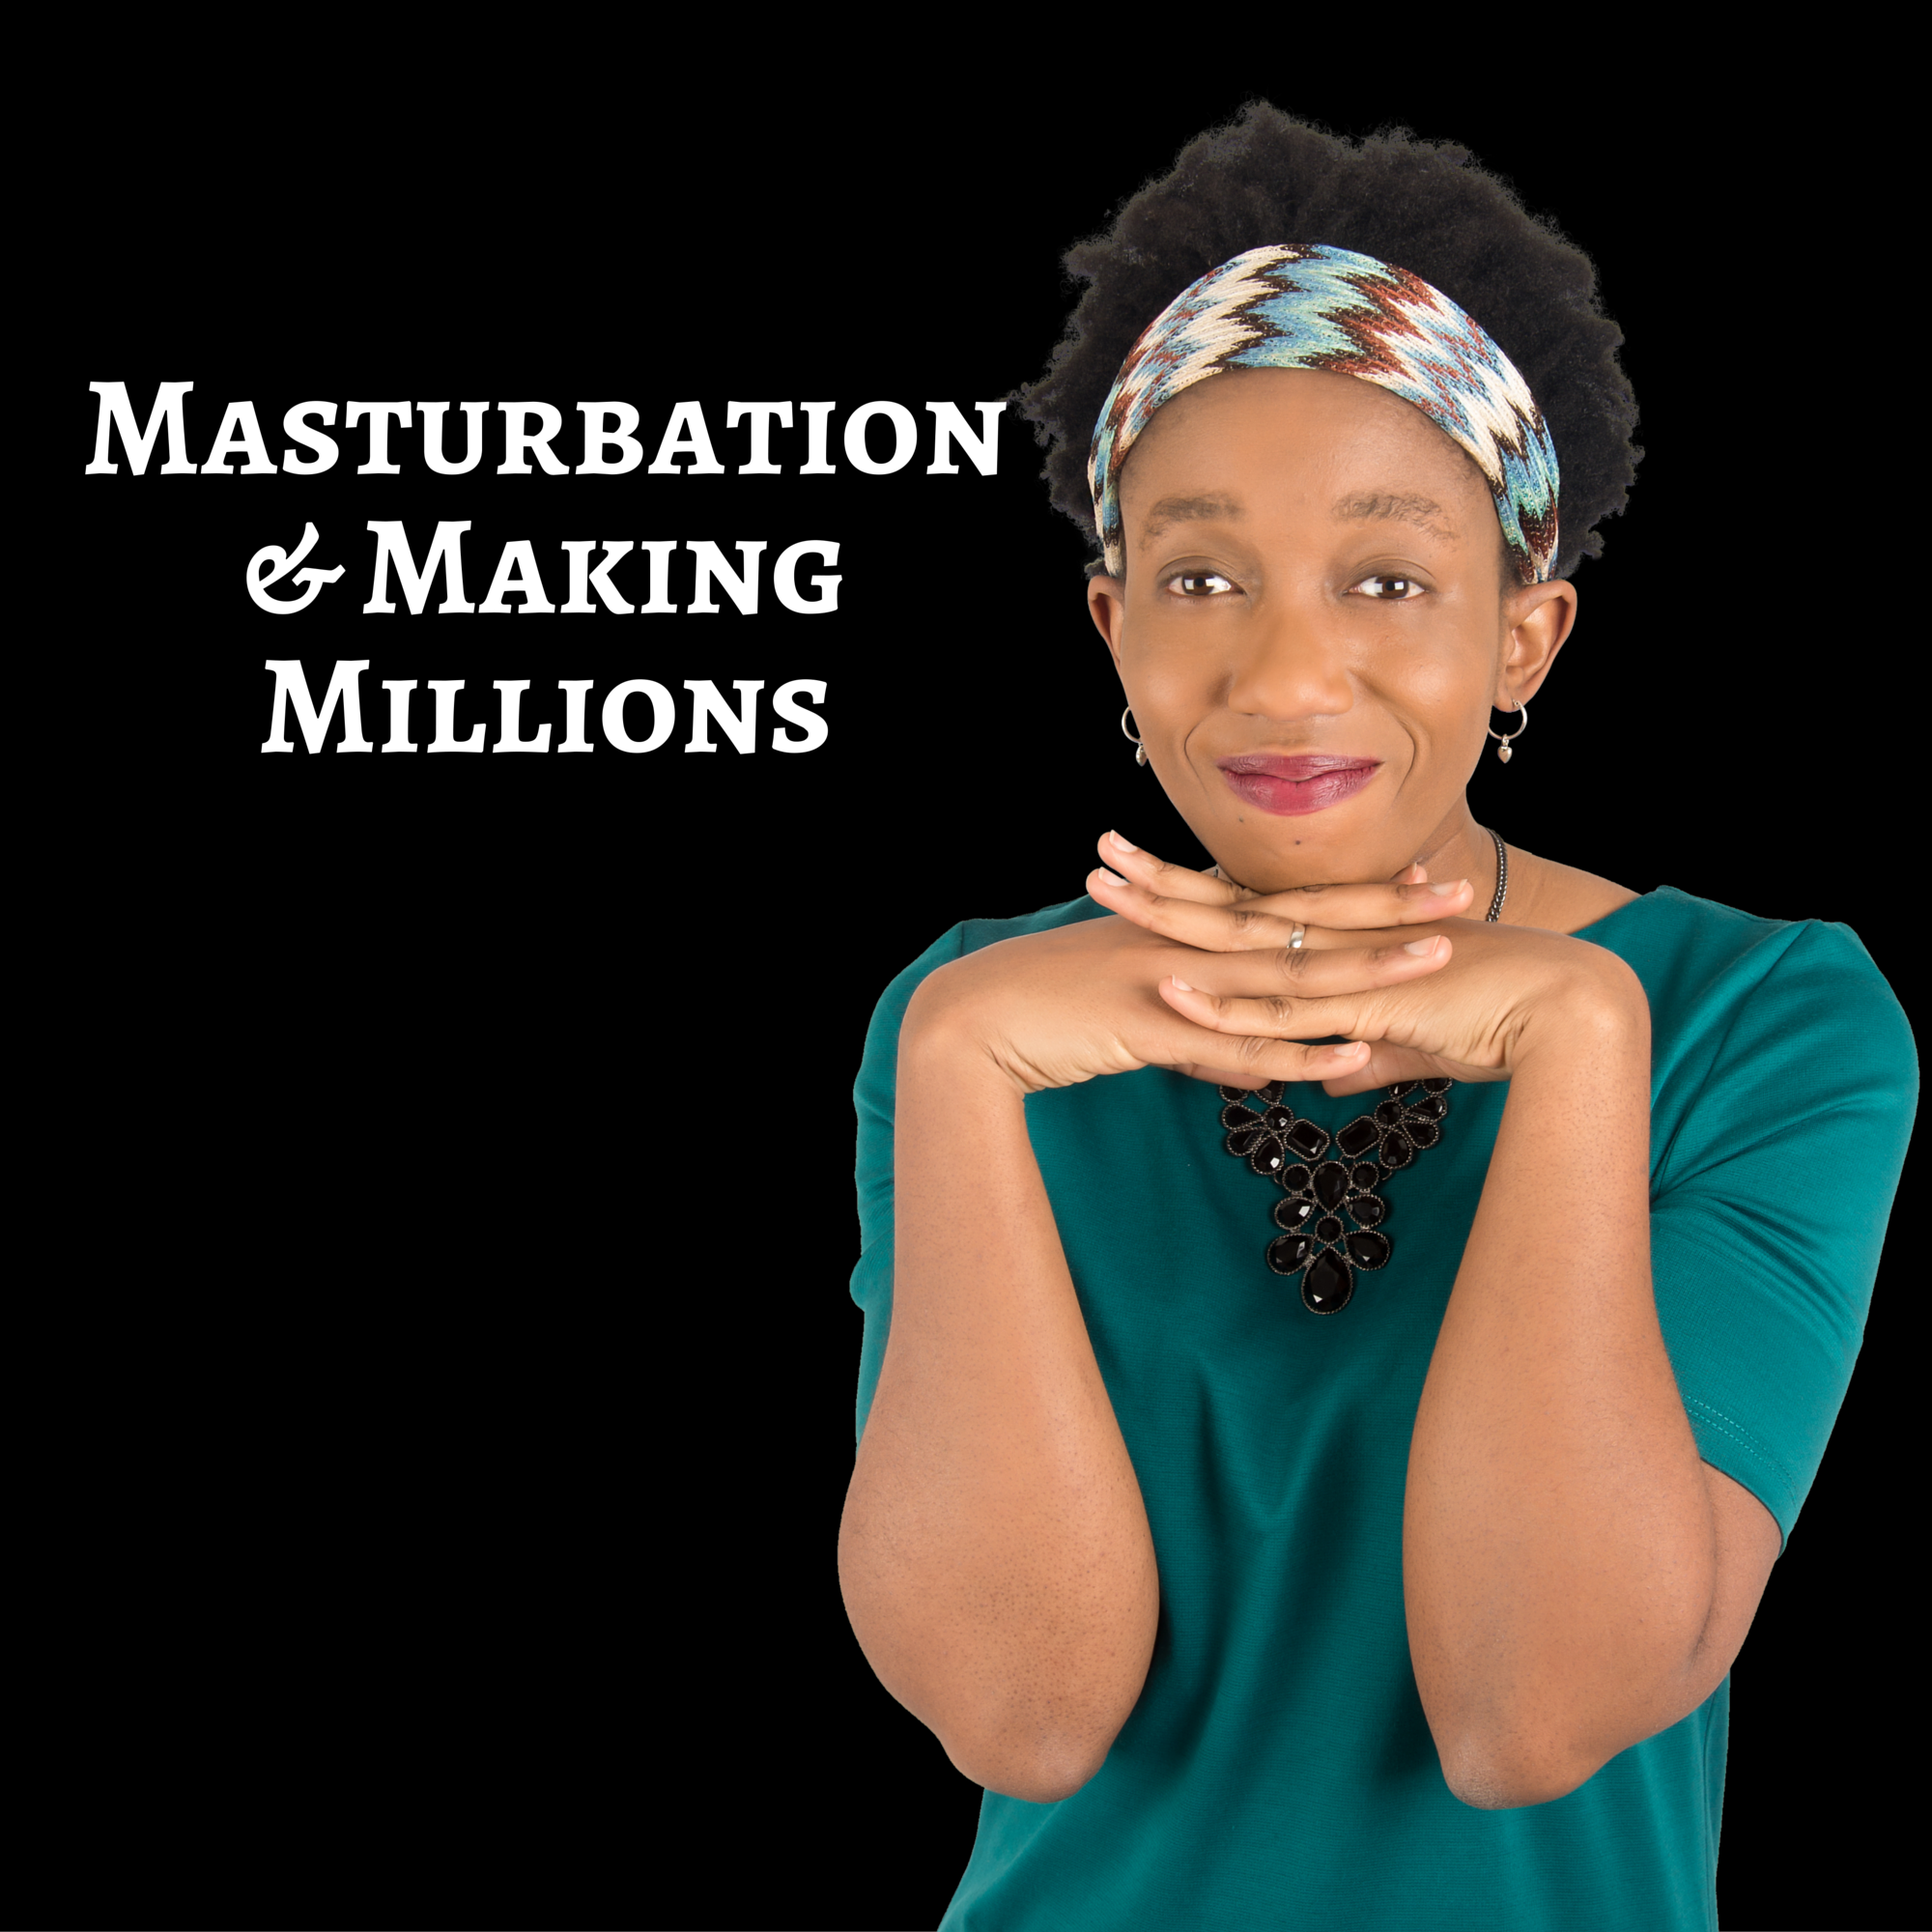 Masturbation & Making Millions…